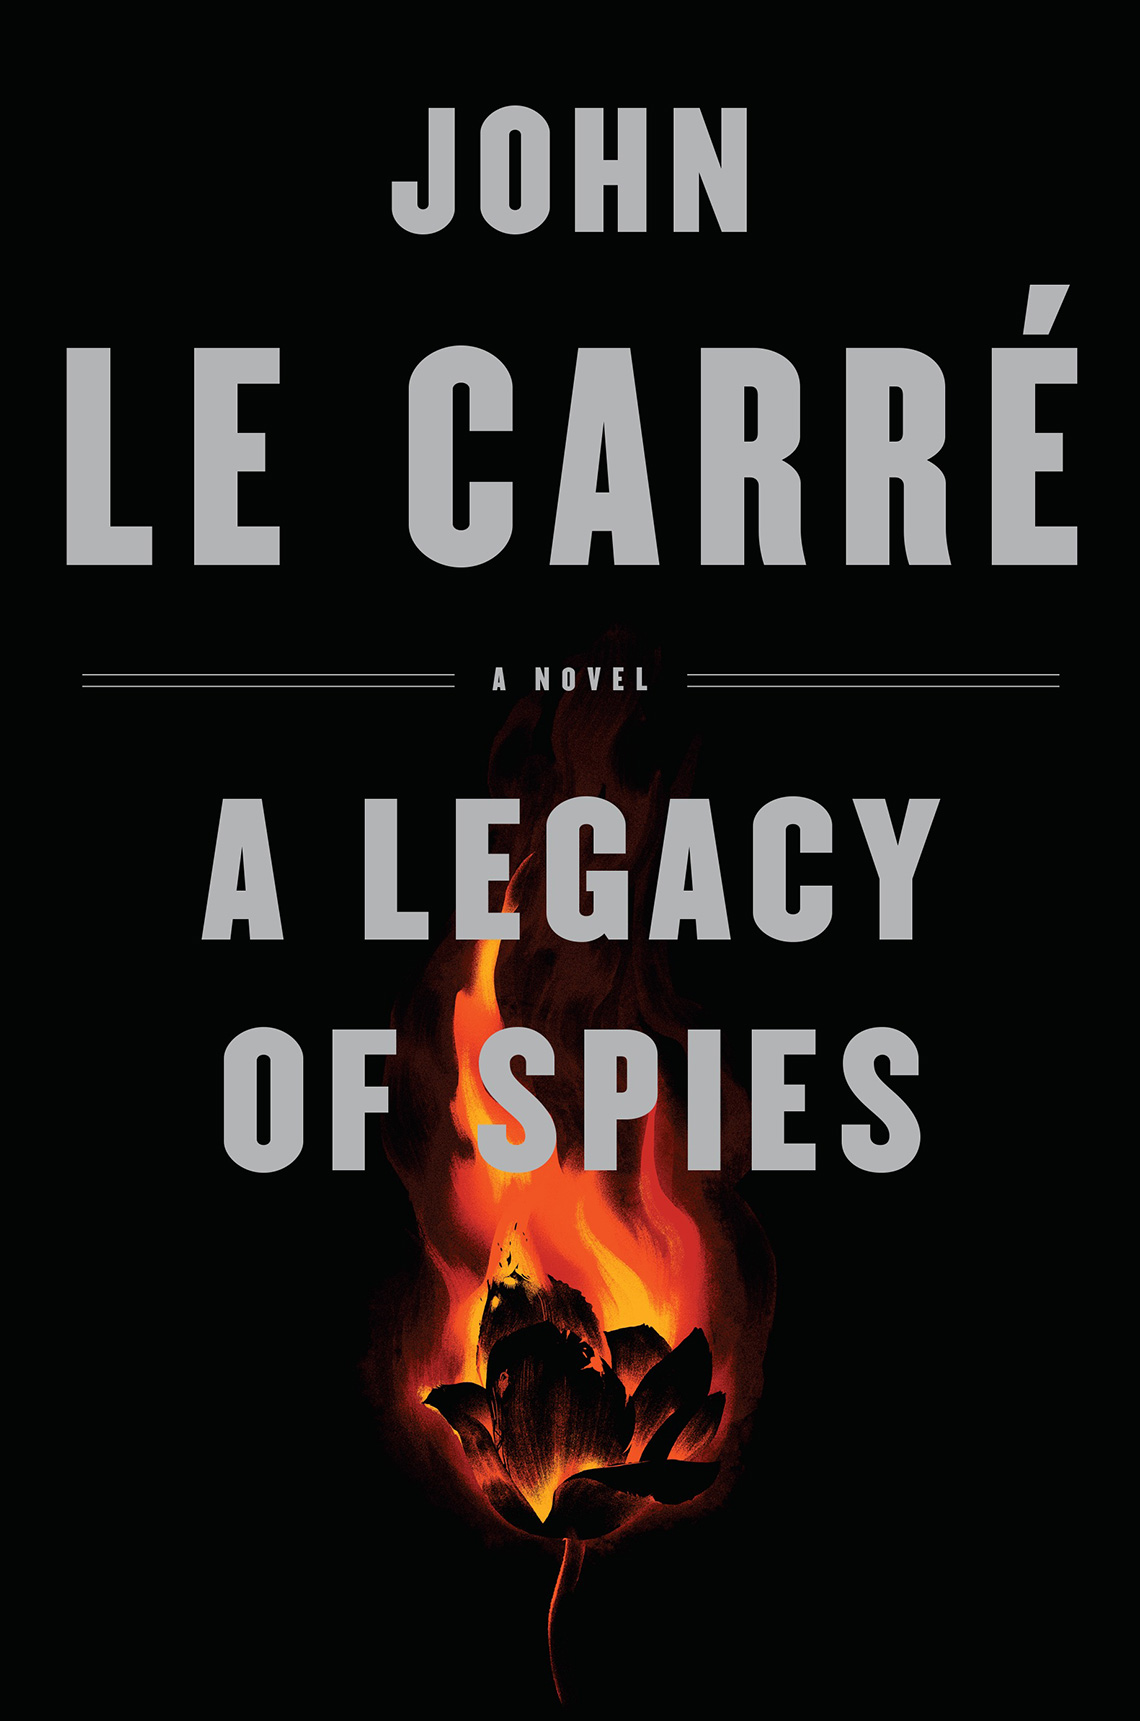 'A Legacy of Spies' by John le Carré